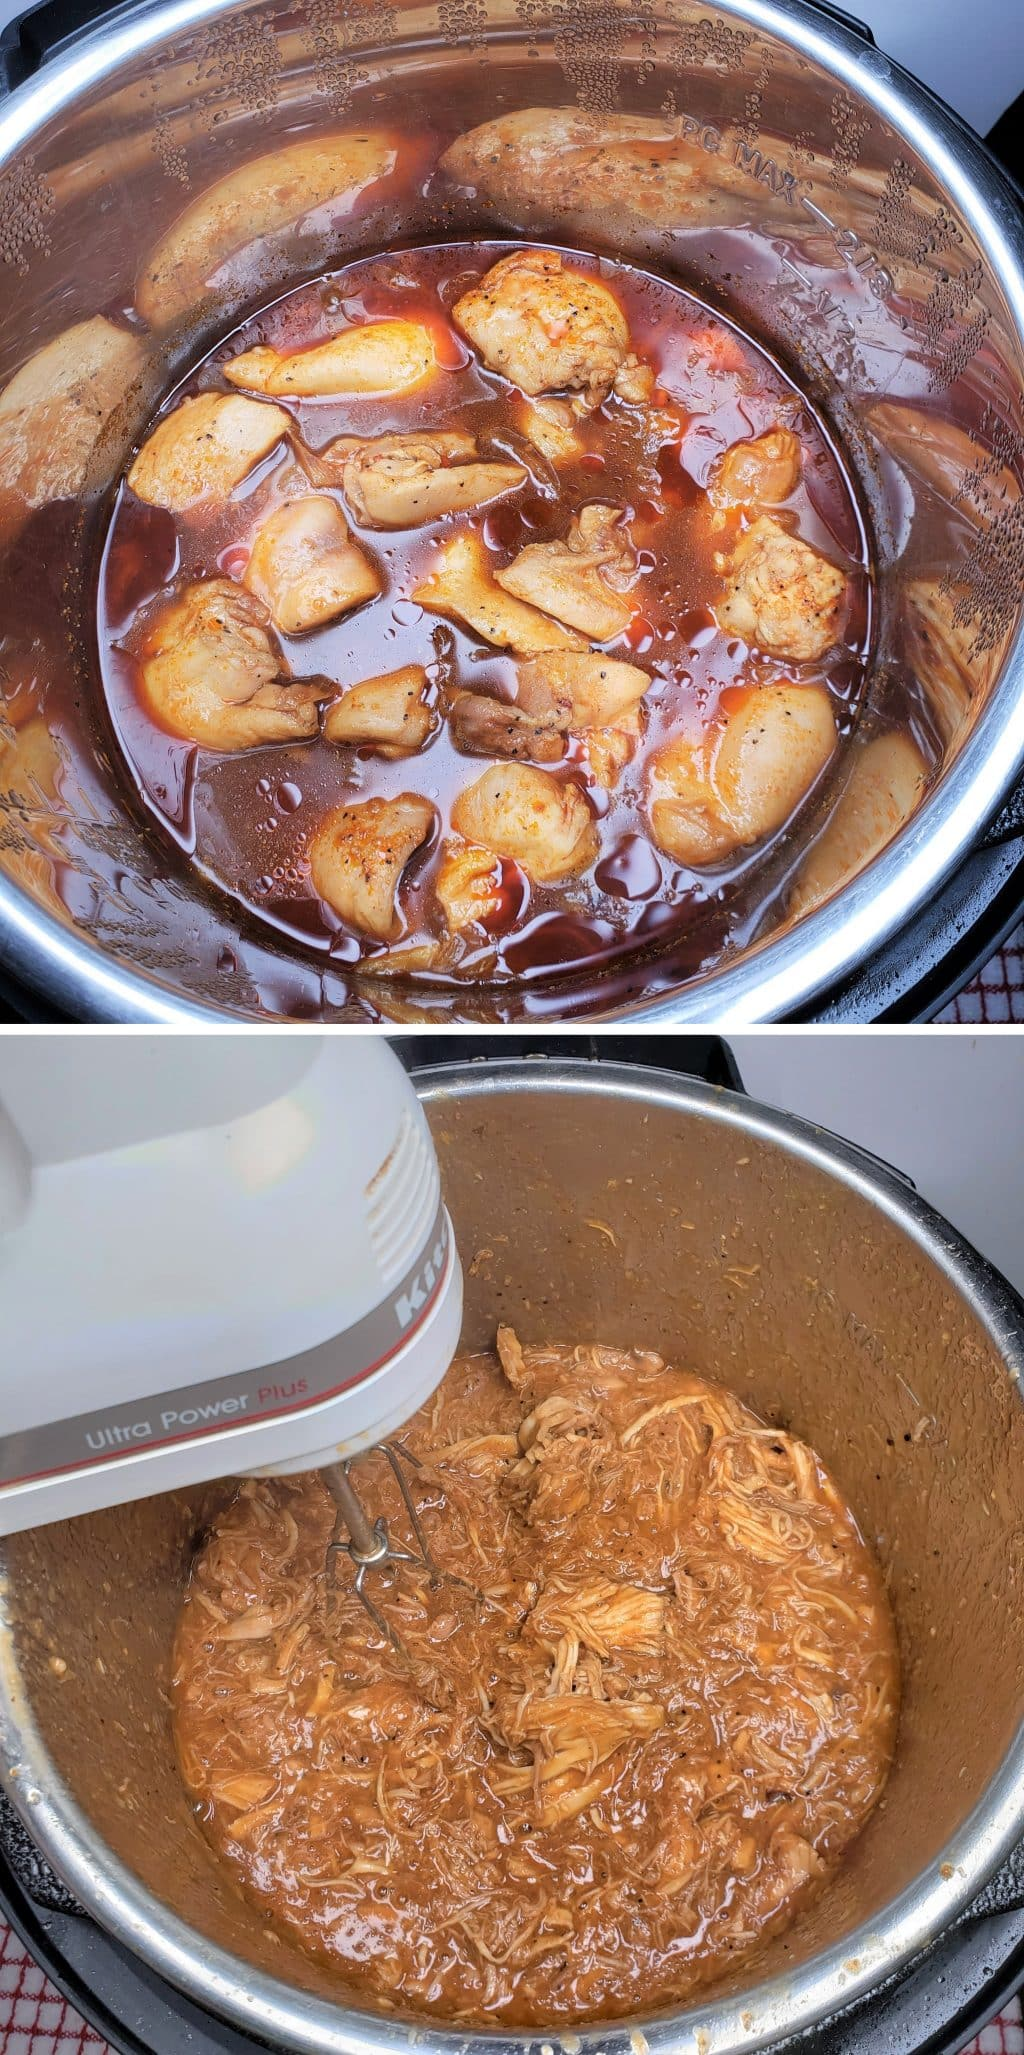 Shred Chicken with Electric Hand Mixer